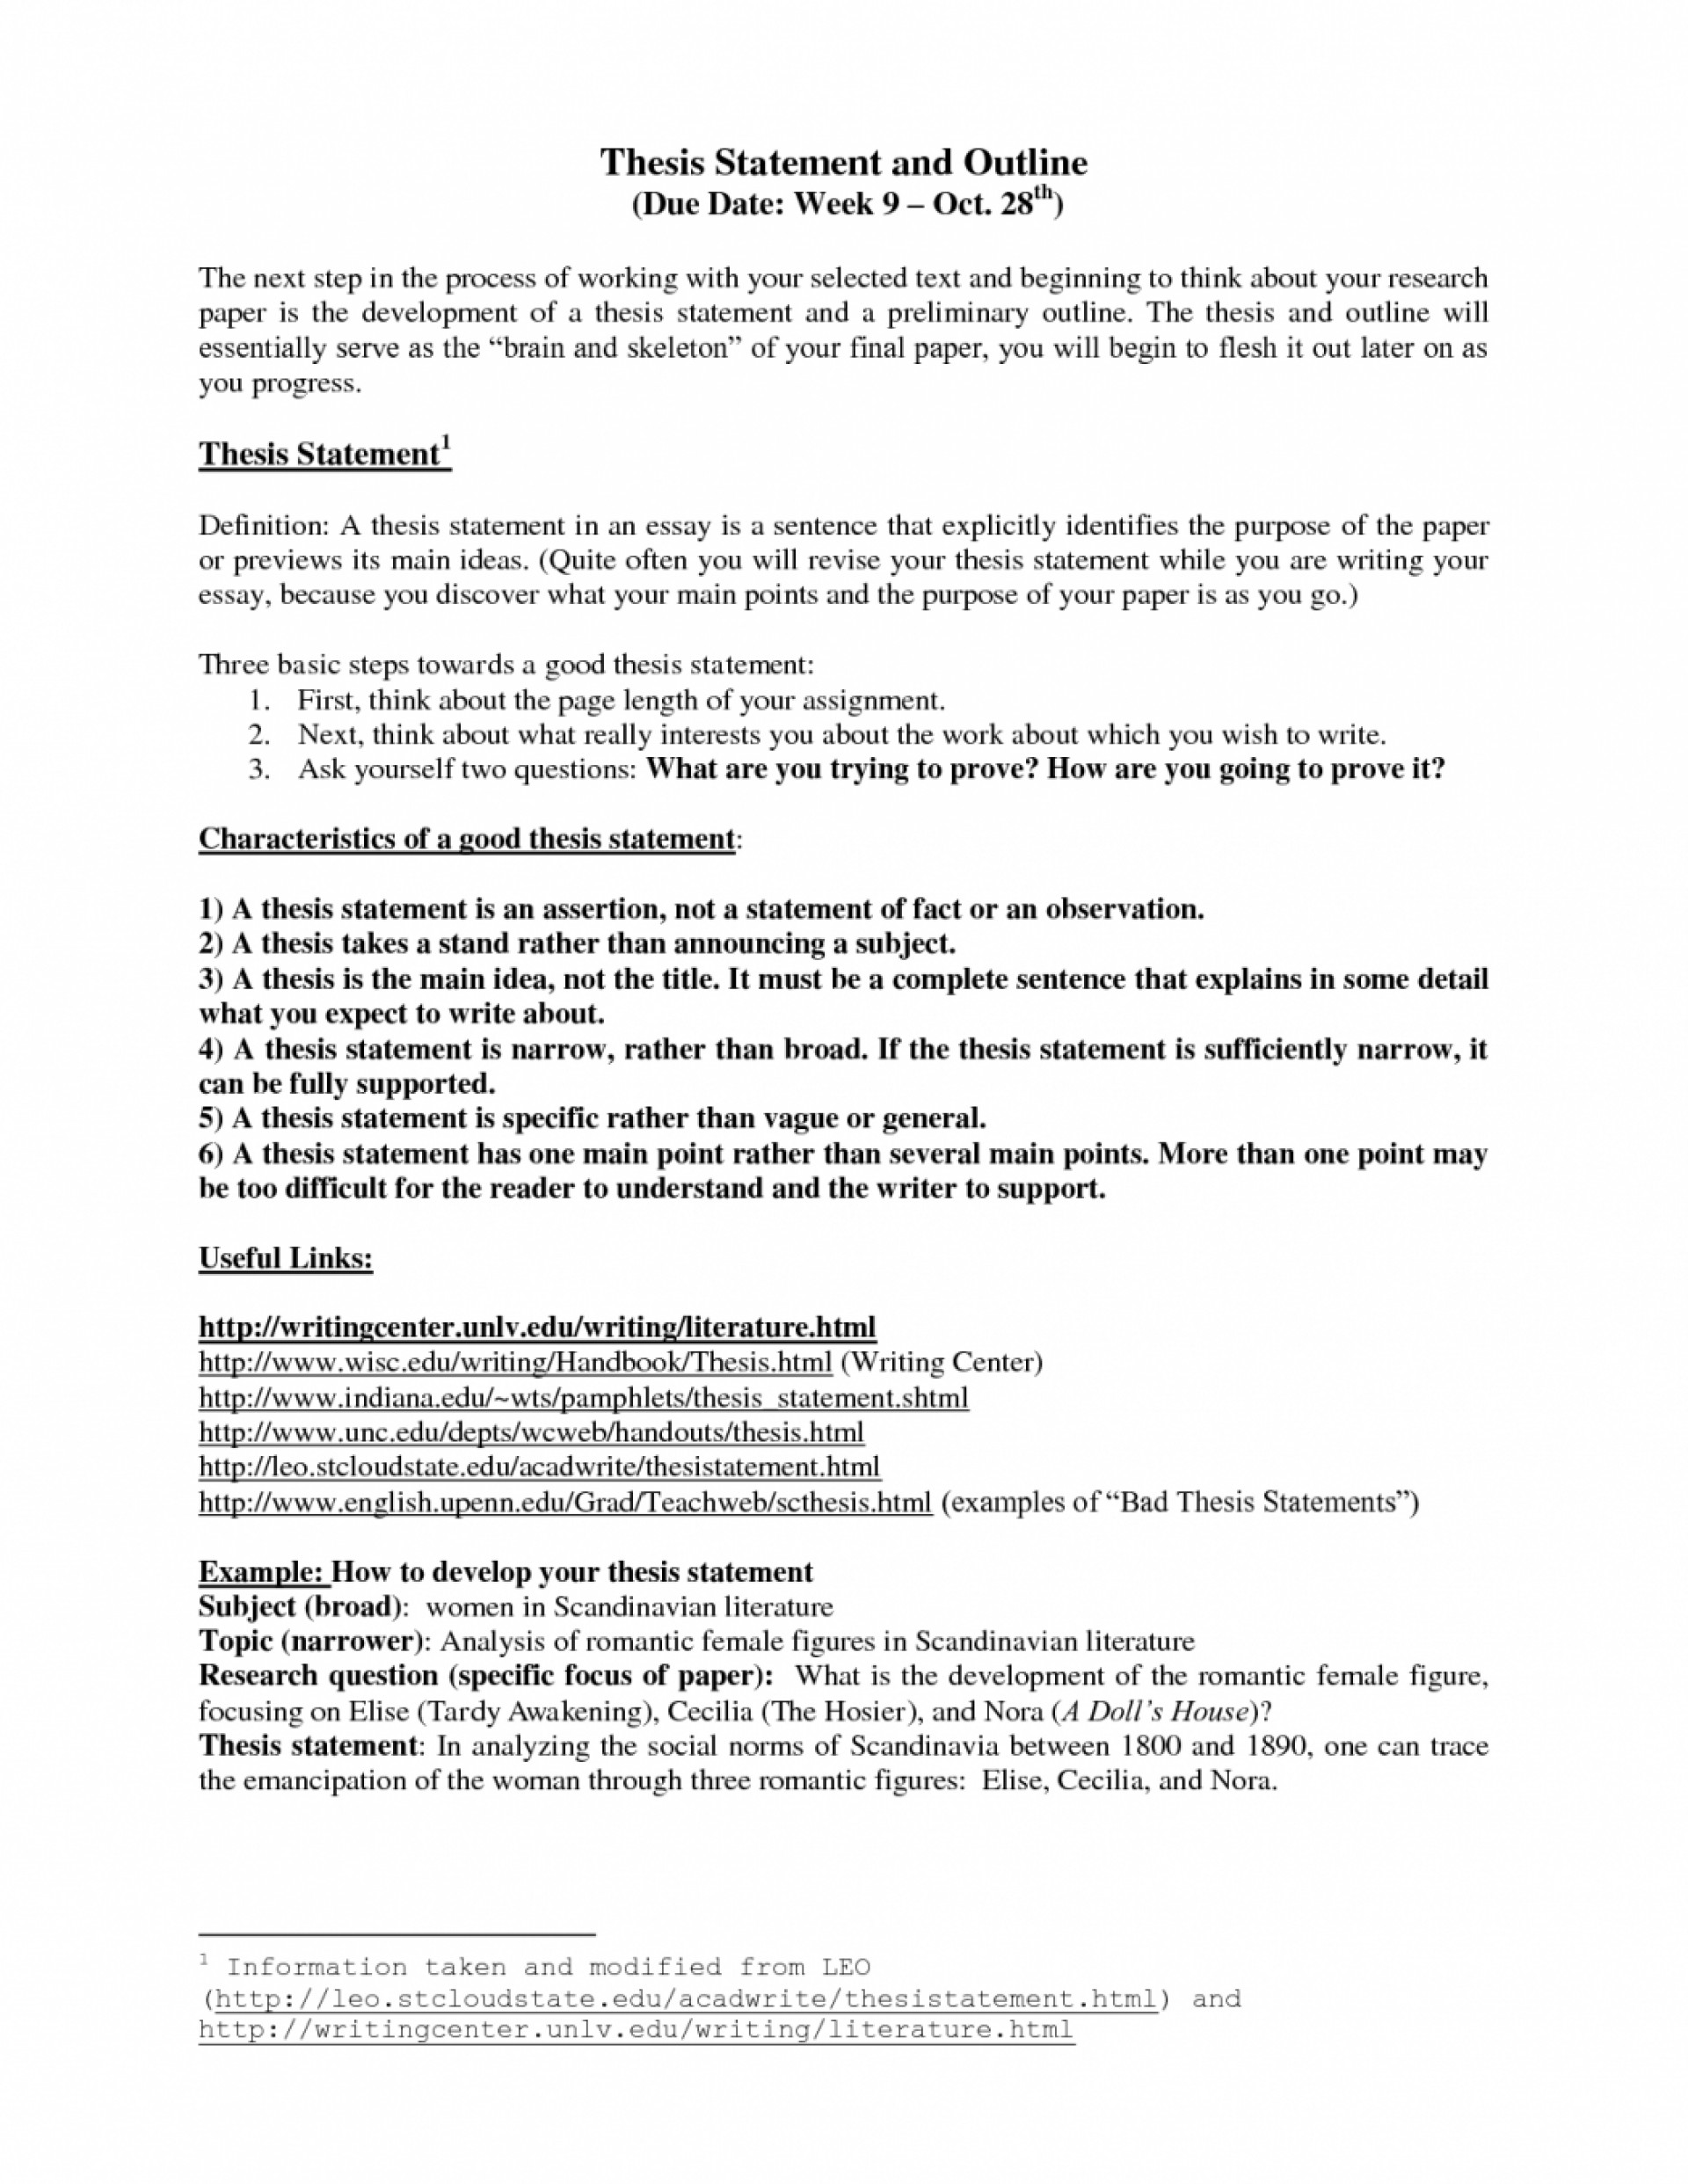 015 Thesis Statement Essay Sample Narrative Cover Letter Example Essays And Outline Template Wx8 Writing Powerpoint Ppt Step By 4th Grade About Being Judged Quizlet Someone Else Stirring Descriptive Examples Definition Structure 1920